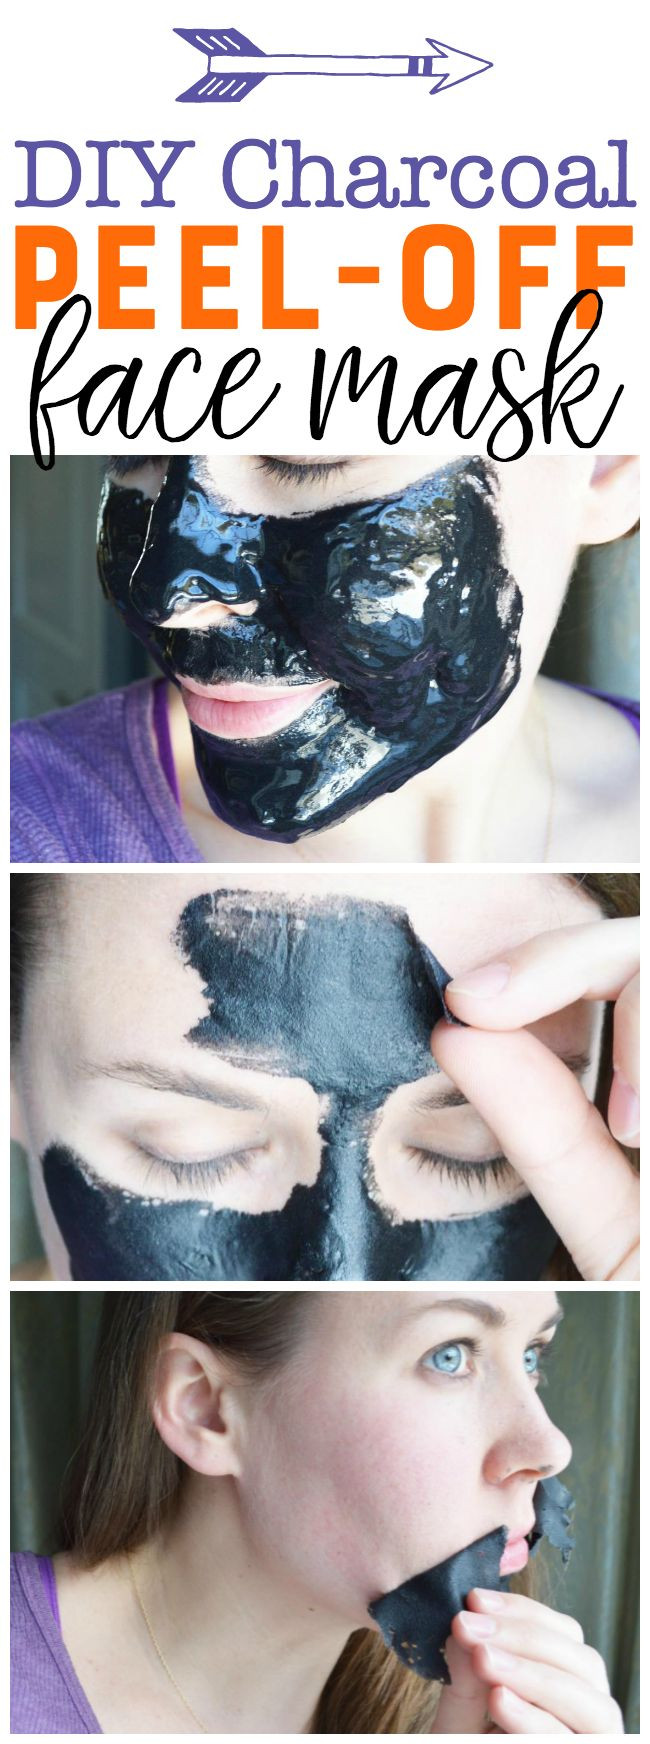 Best ideas about DIY Black Charcoal Mask . Save or Pin Best 20 Faces ideas on Pinterest Now.